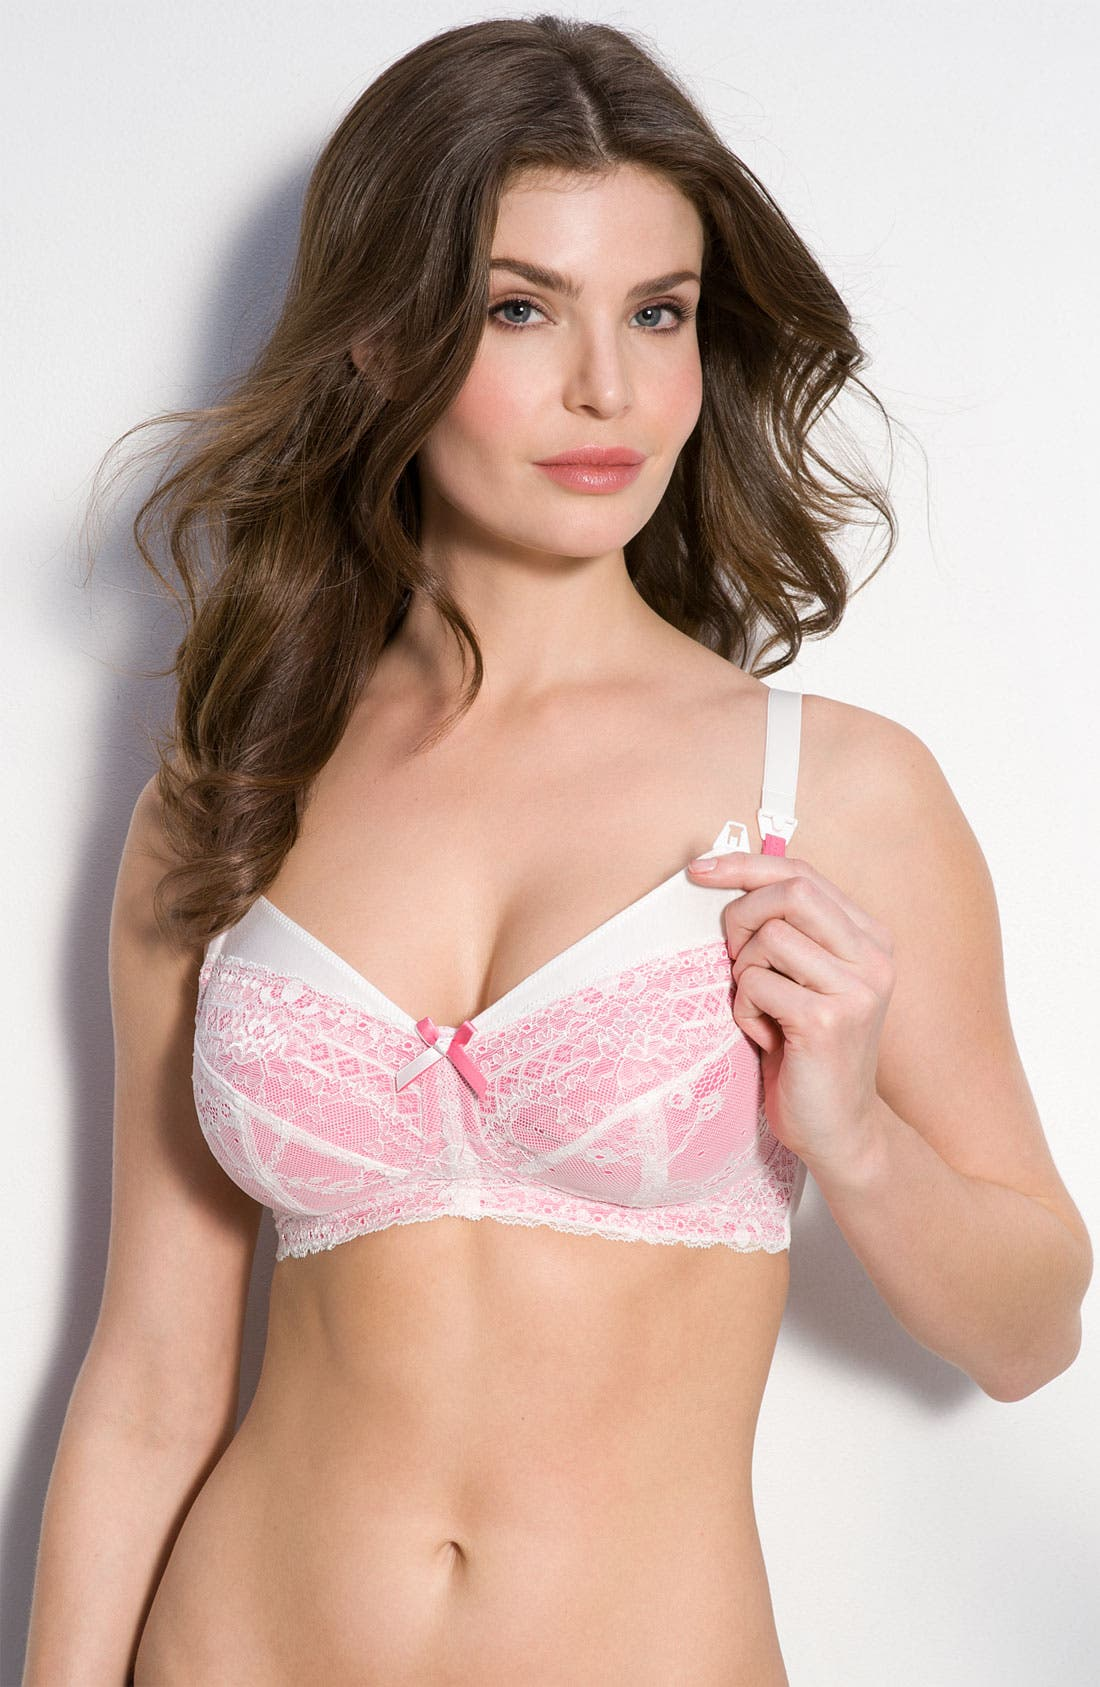 Alternate Image 1 Selected - Panache 'Sophie 5821' Wireless Nursing Bra (DD Cup & Up)